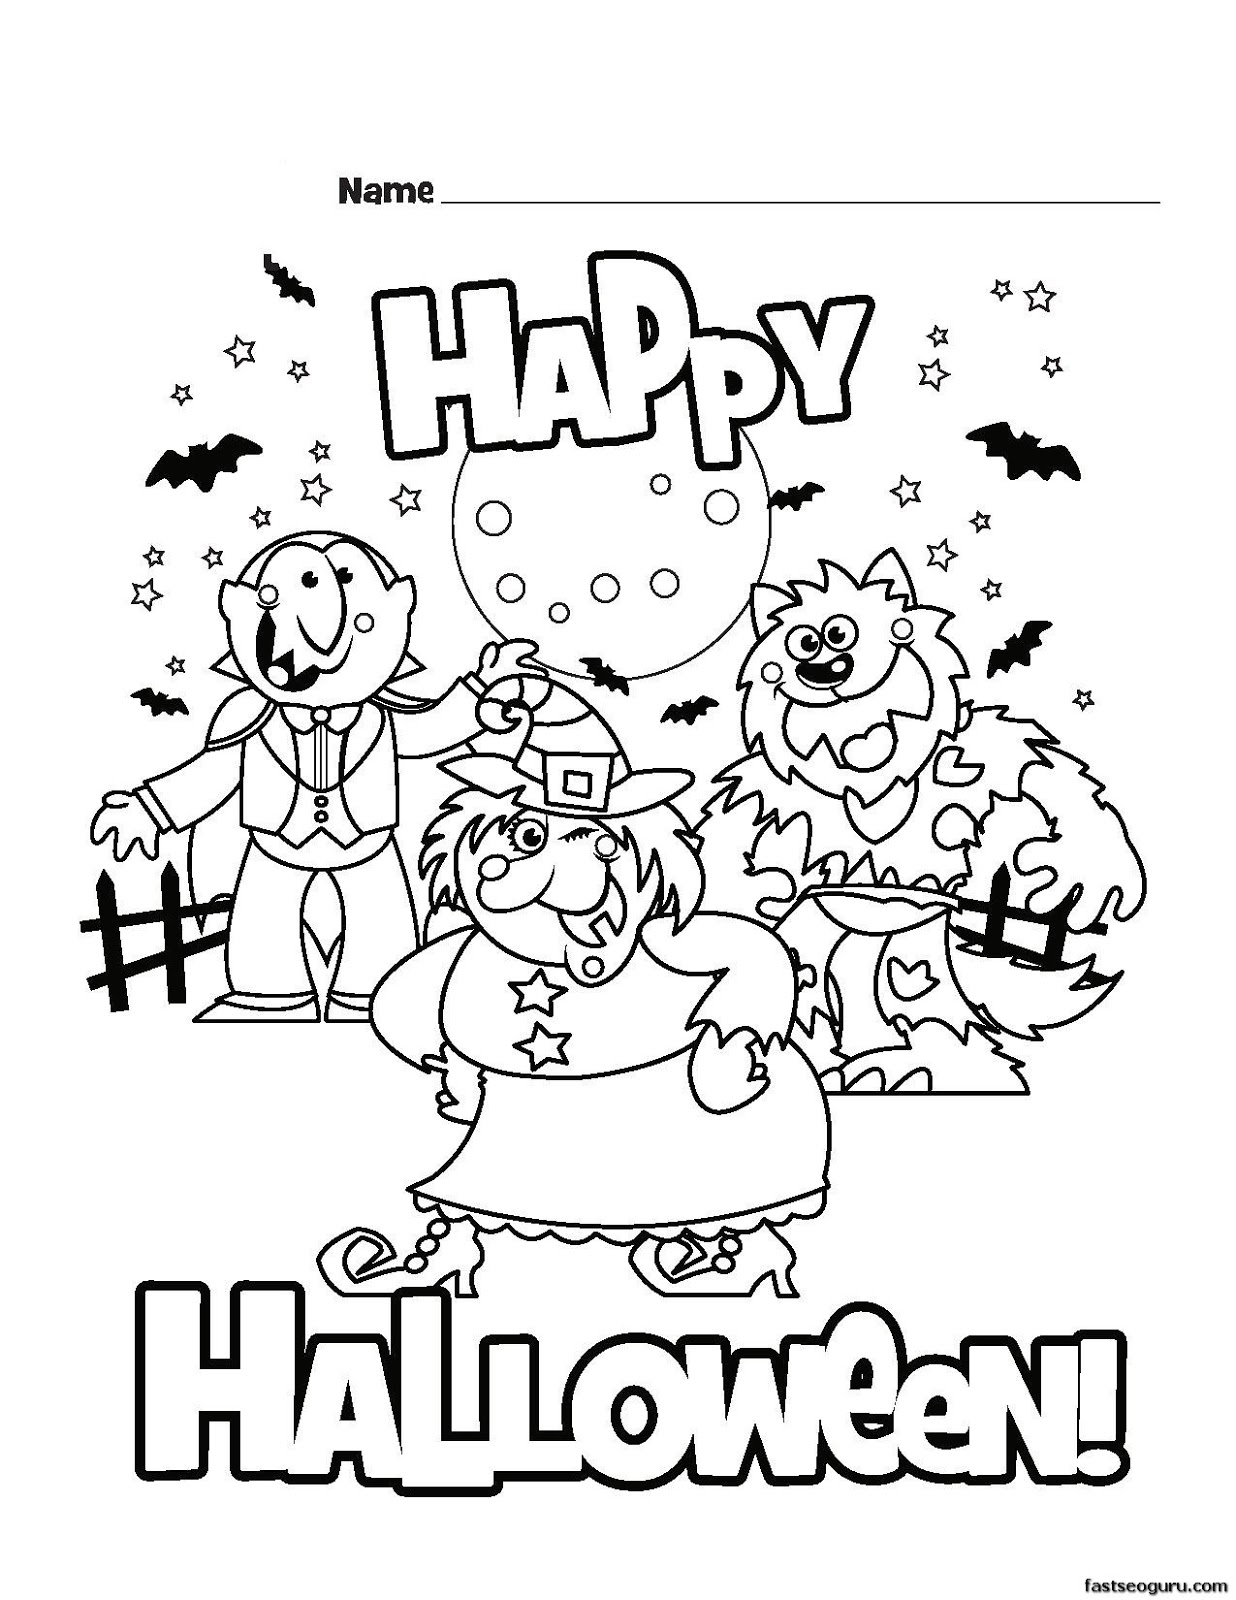 Free happy halloween coloring pages template for print for Happy halloween coloring pages printable